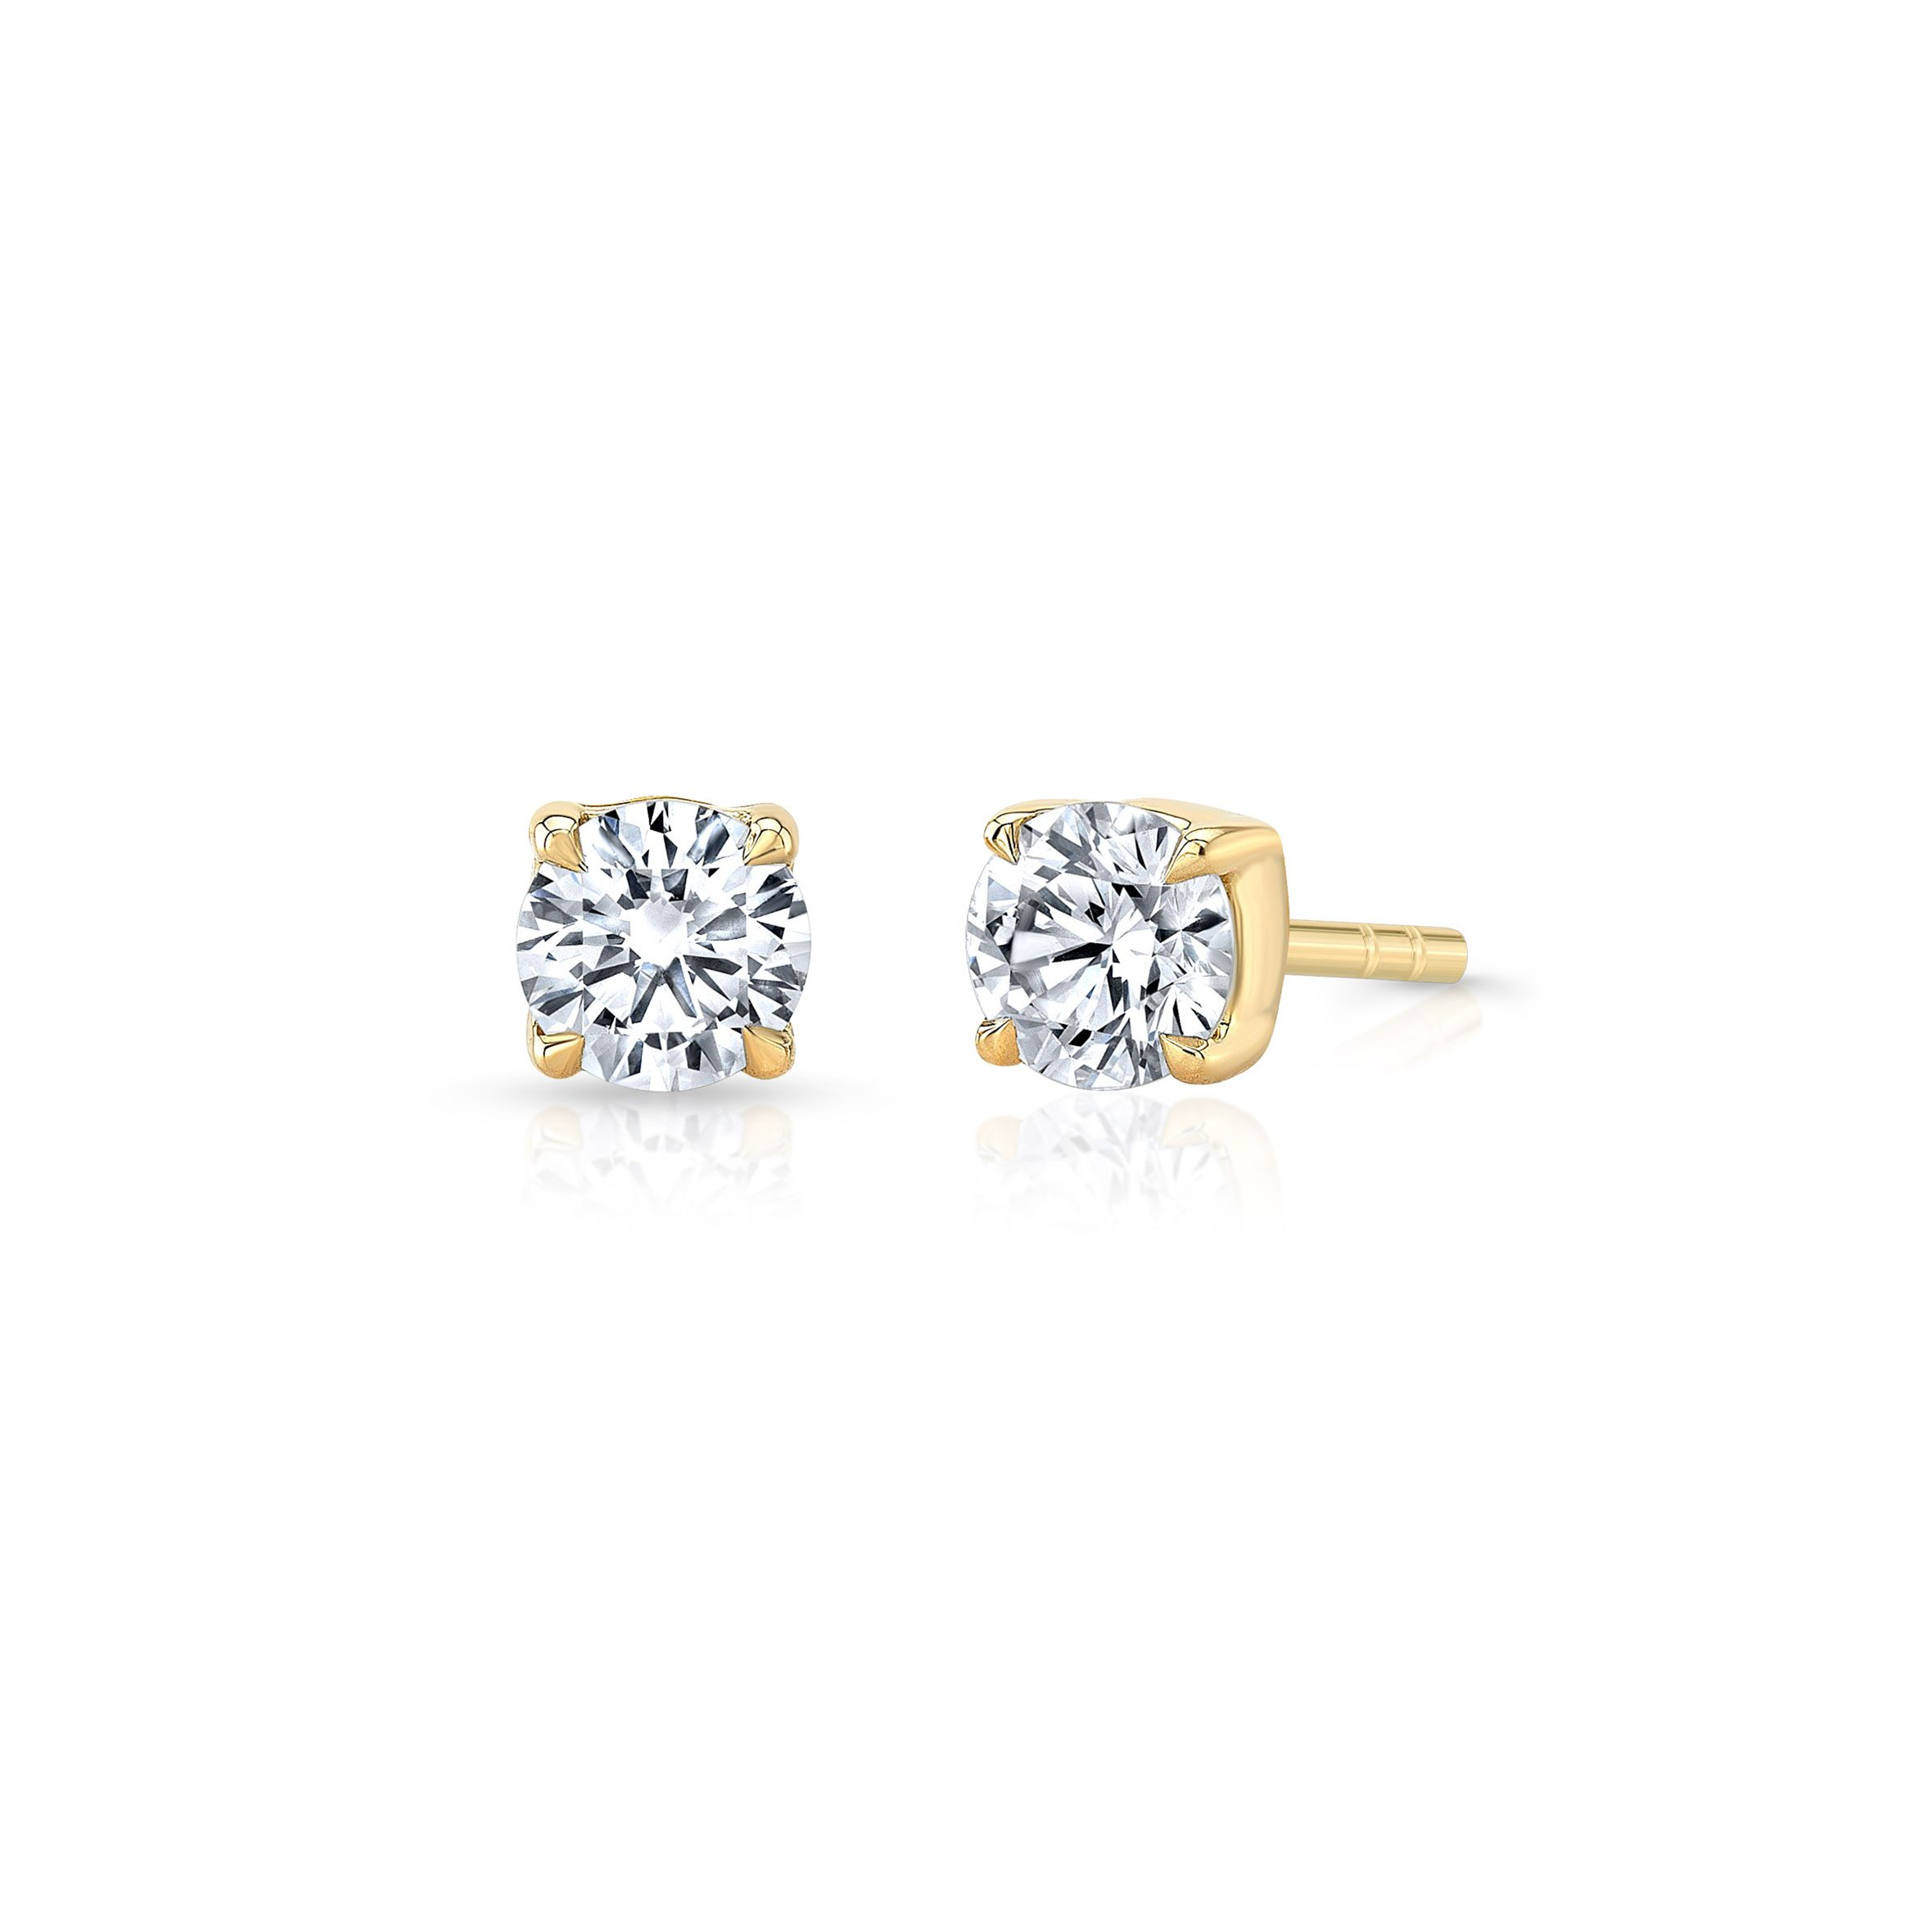 Carlie Round Brilliant Lab Grown Diamond Studs in Yellow Gold Product Shot of Side from Oui by Jean Dousset